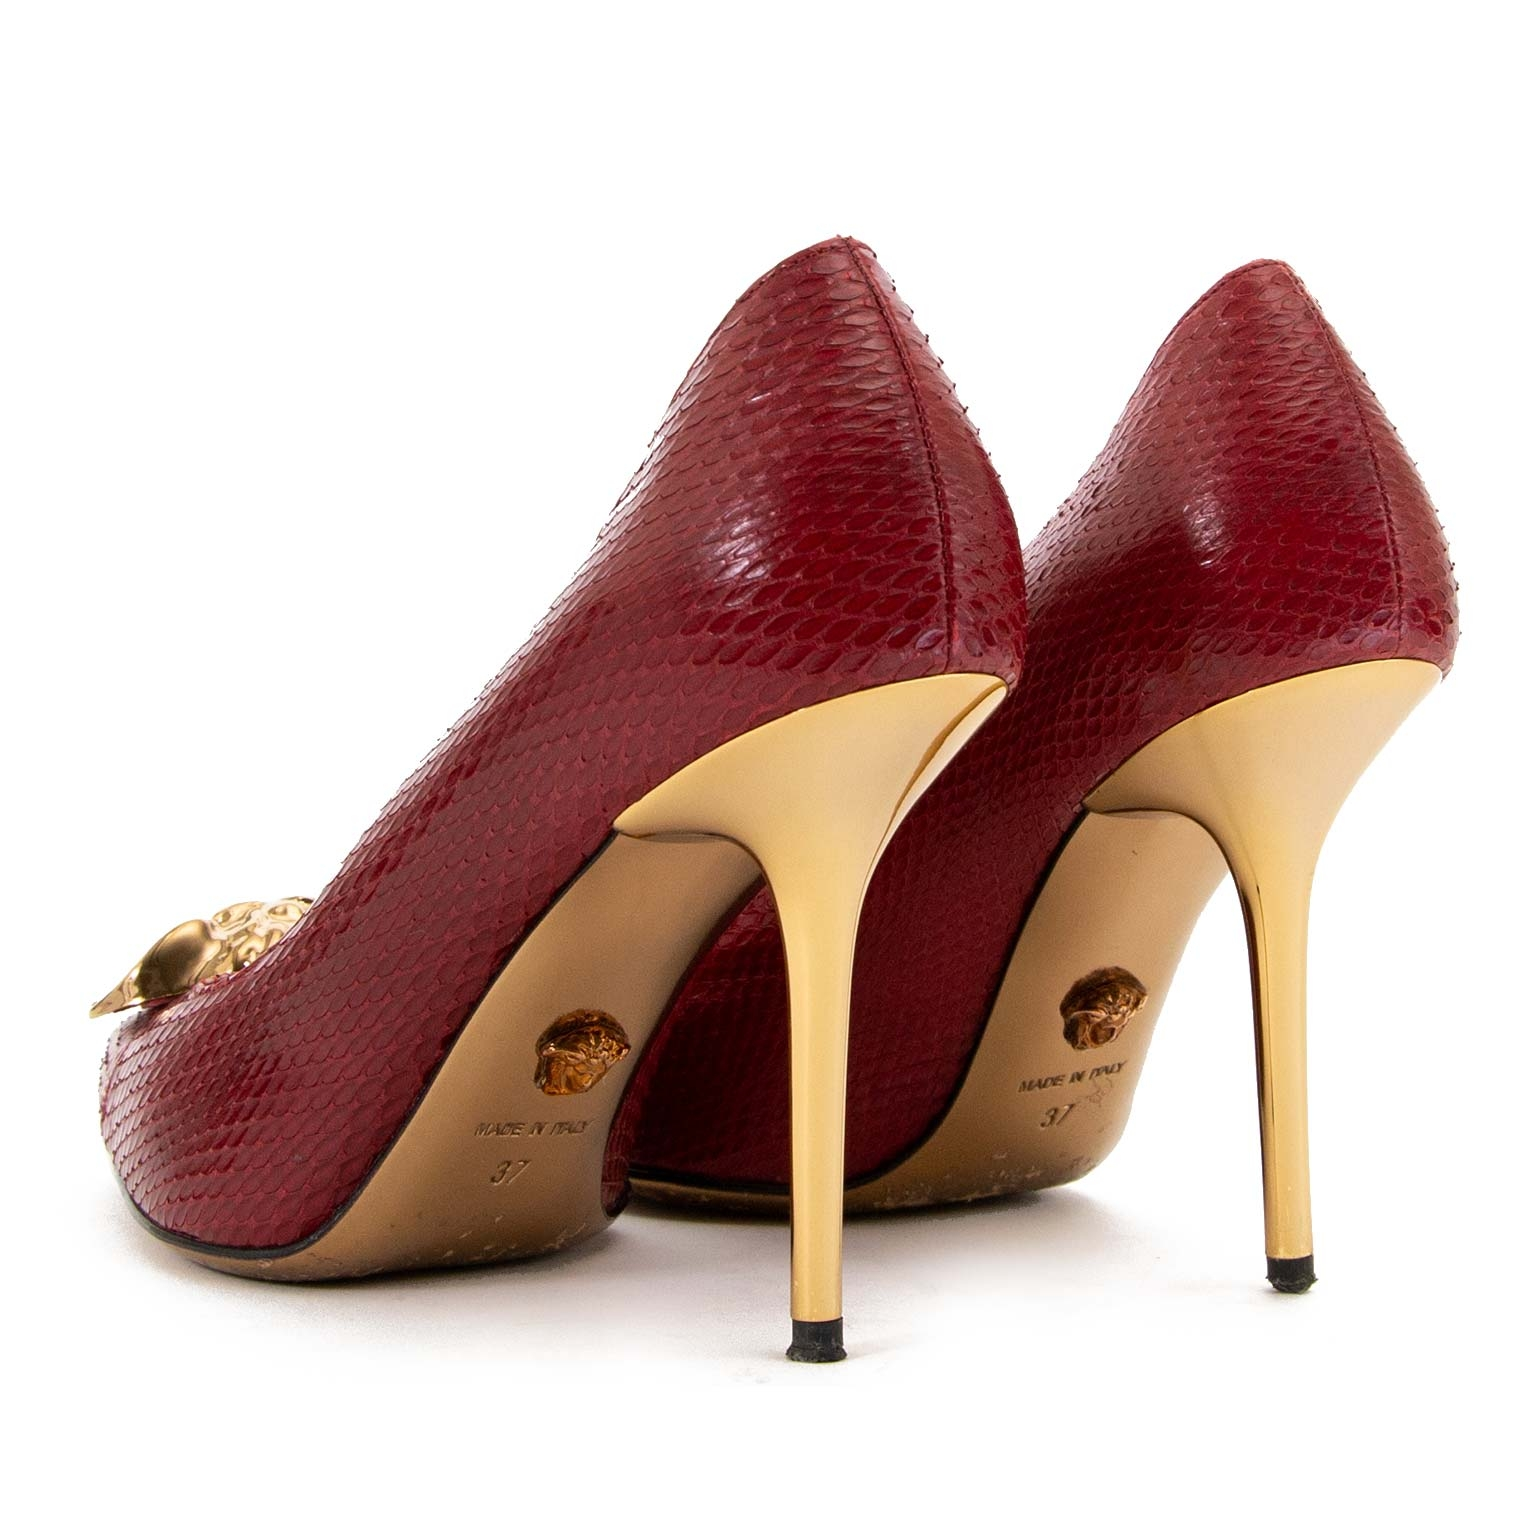 buy and sell second hand Versace Red Leather Medusa Pumps - Size 37 at labellov antwerp for the best price